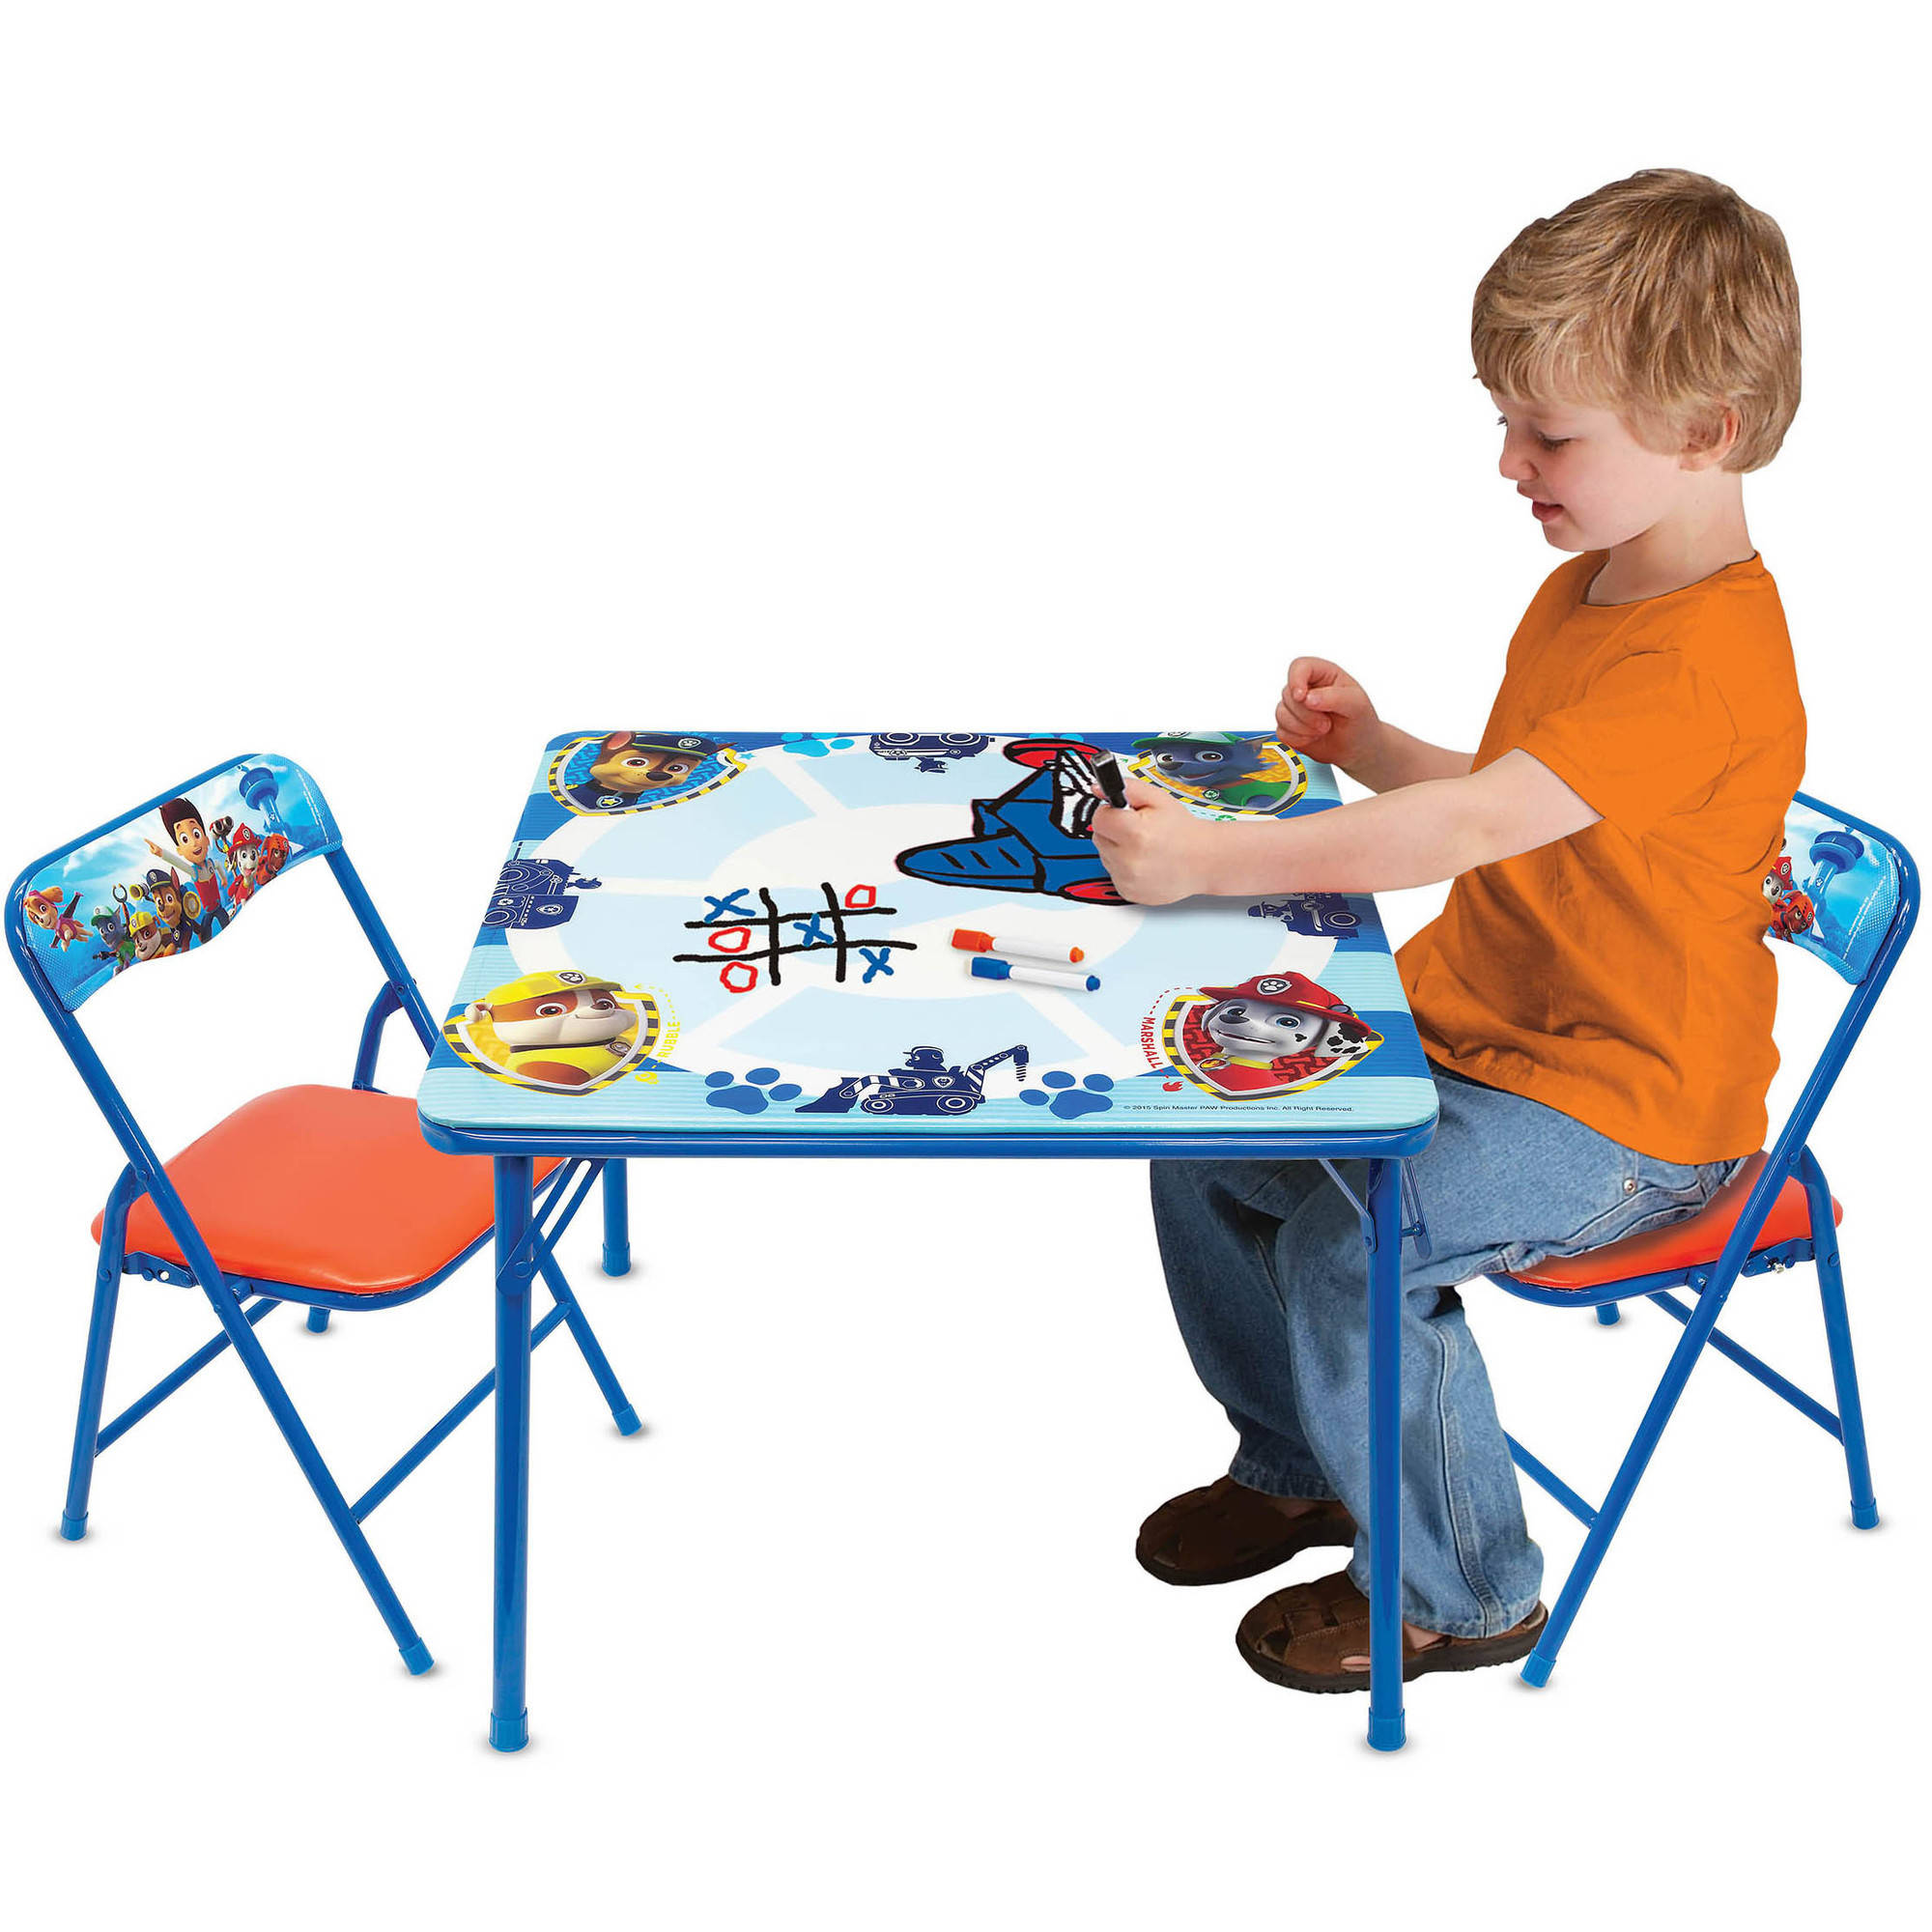 Paw Patrol Erasable Activity Table Set with Markers